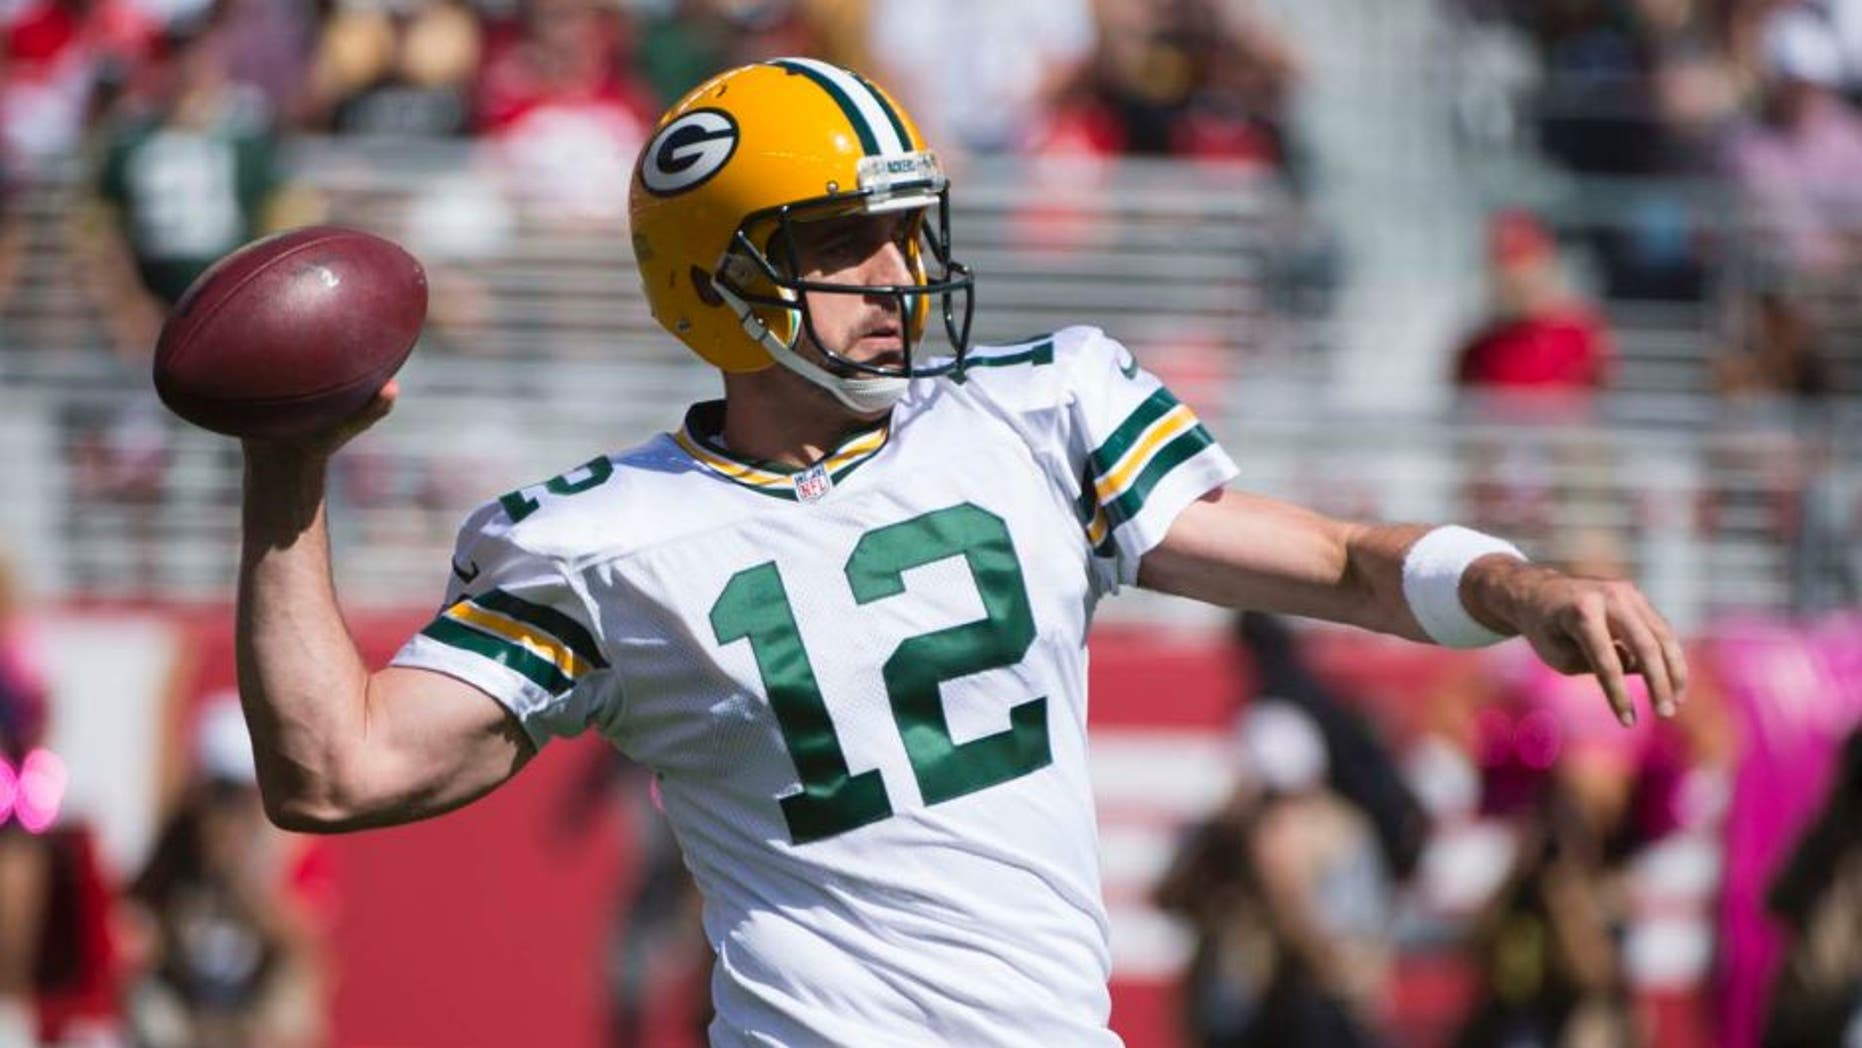 Green Bay Packers quarterback Aaron Rodgers passes the football against the San Francisco 49ers during the first quarter at Levi's Stadium in Santa Clara, Calif., on Sunday, Oct. 4, 2015.